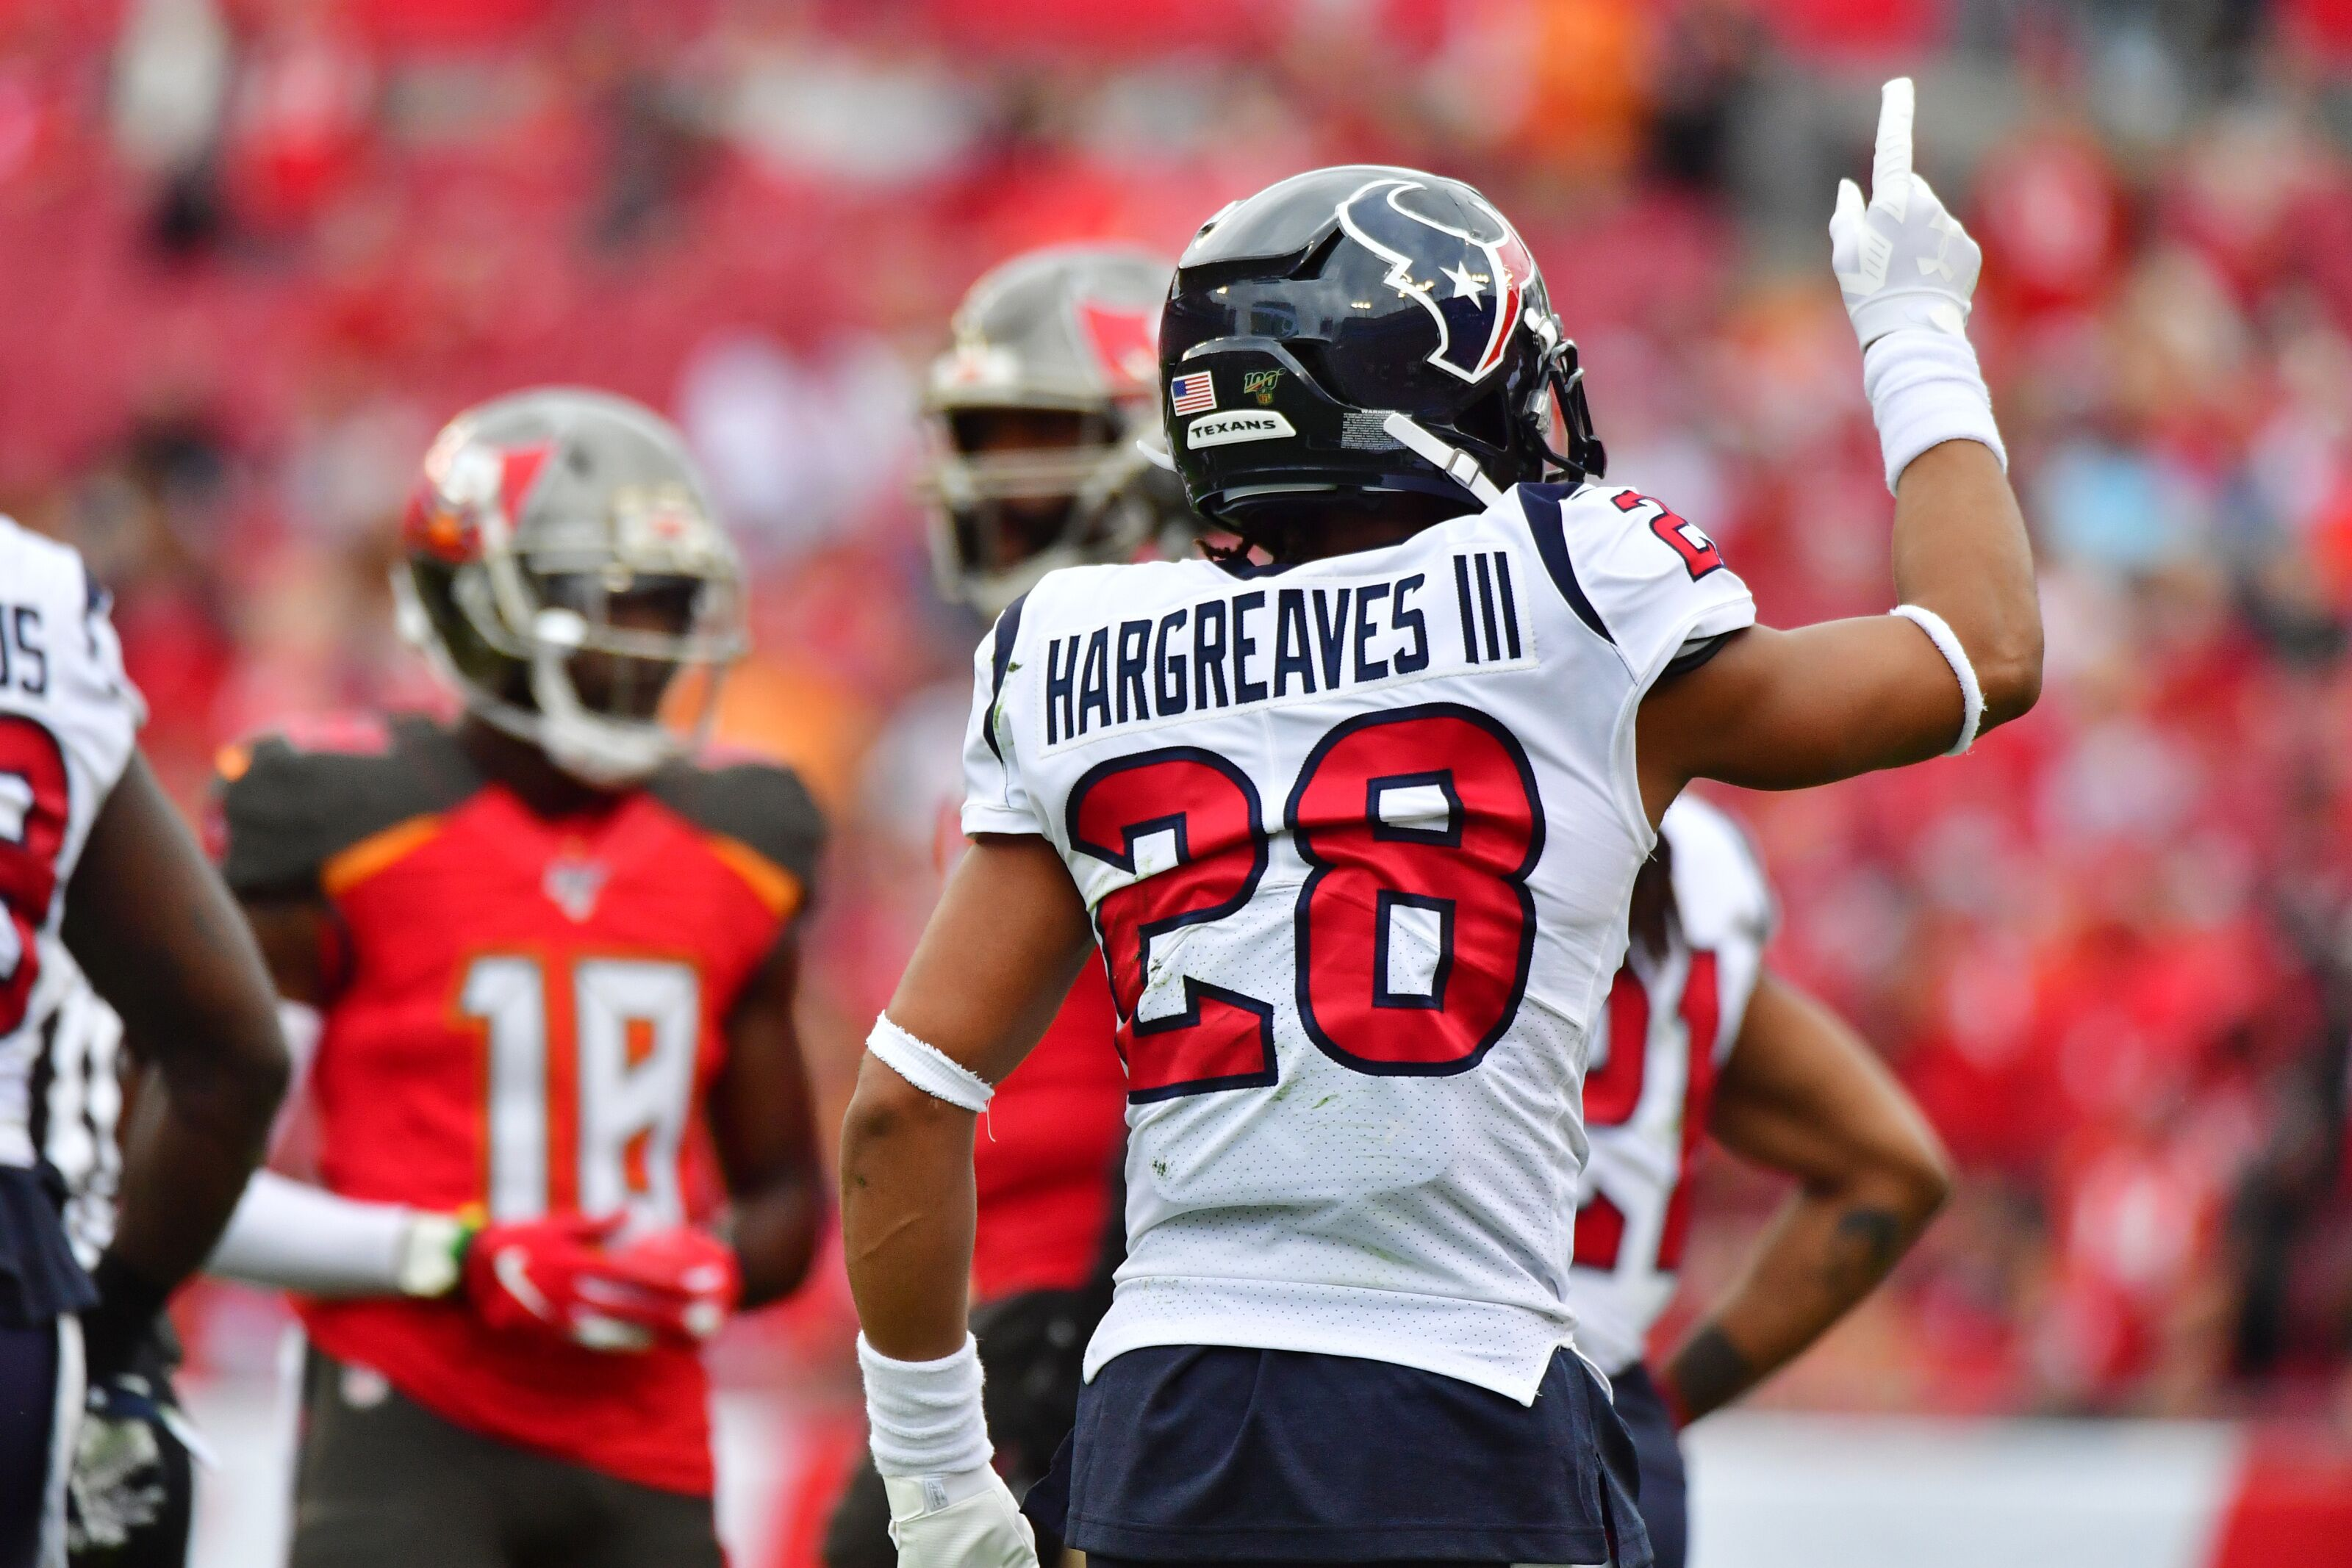 Vernon Hargreaves III poses an intriguing decision for the Houston Texans